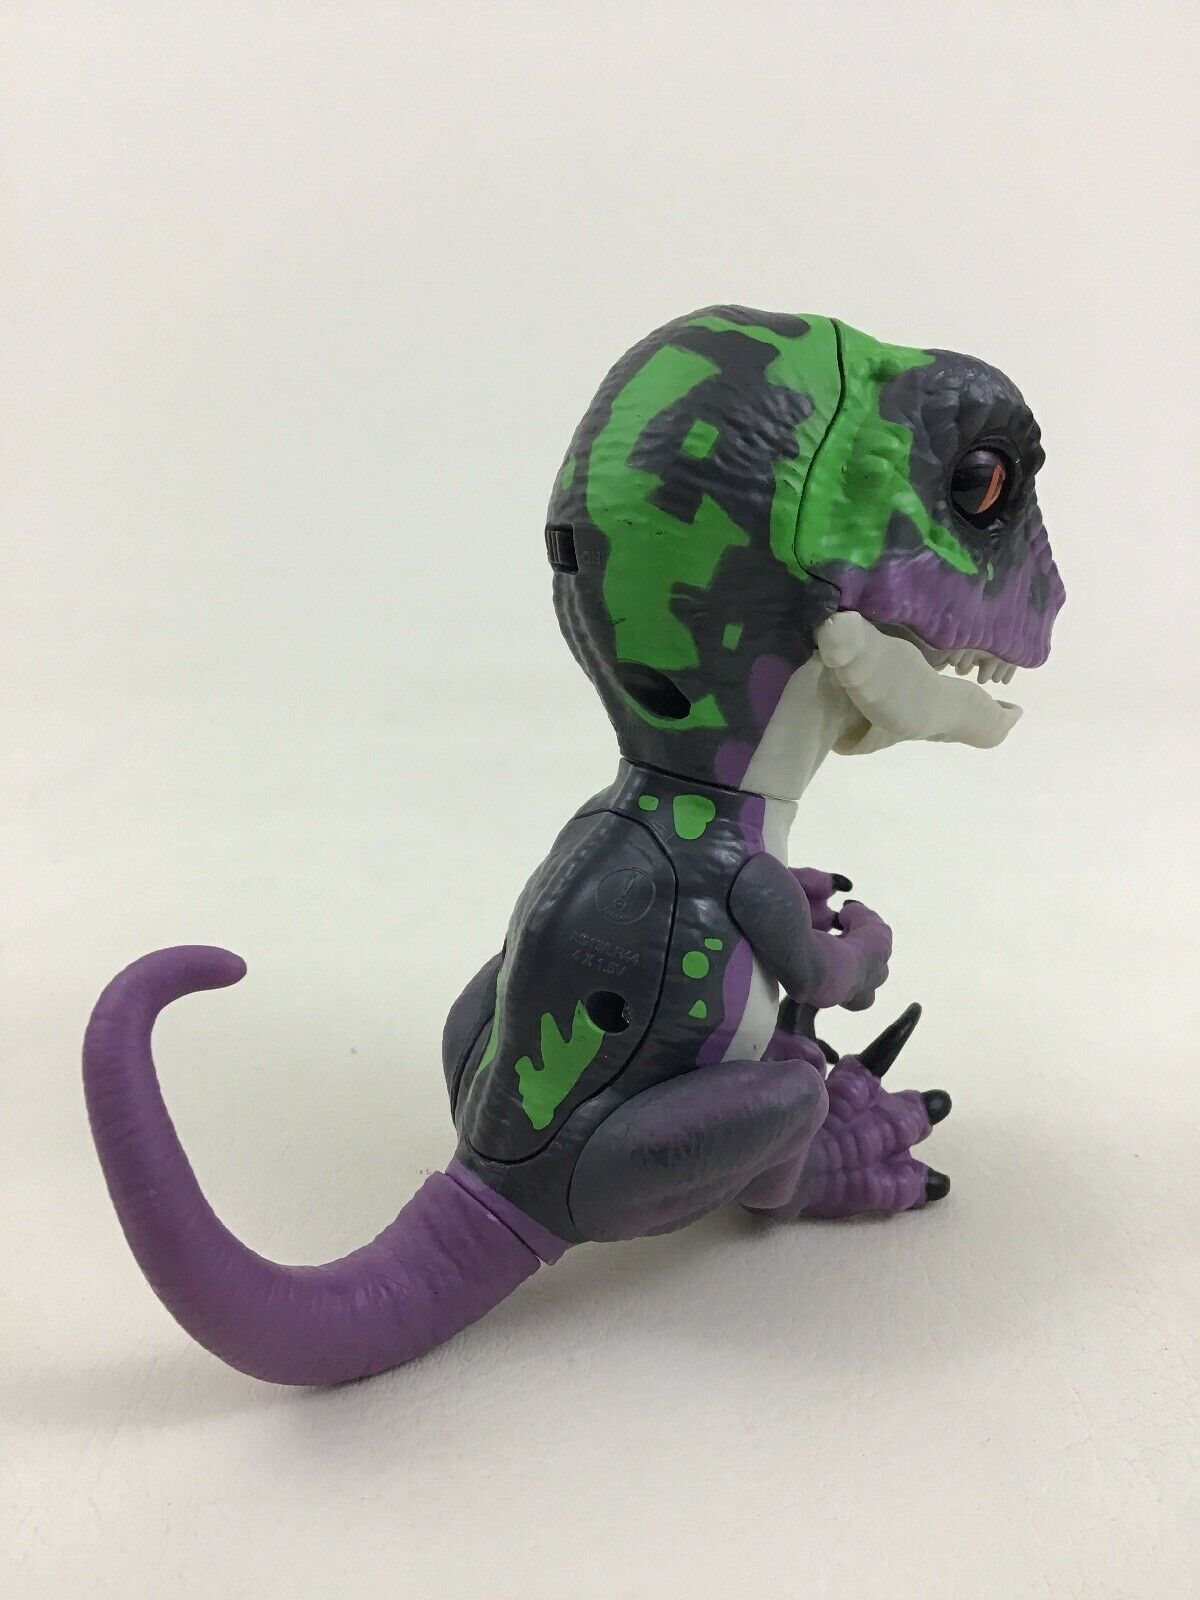 Fingerlings Untamed Razor Raptor Purple Dinosaur Interactive Toy WowWee